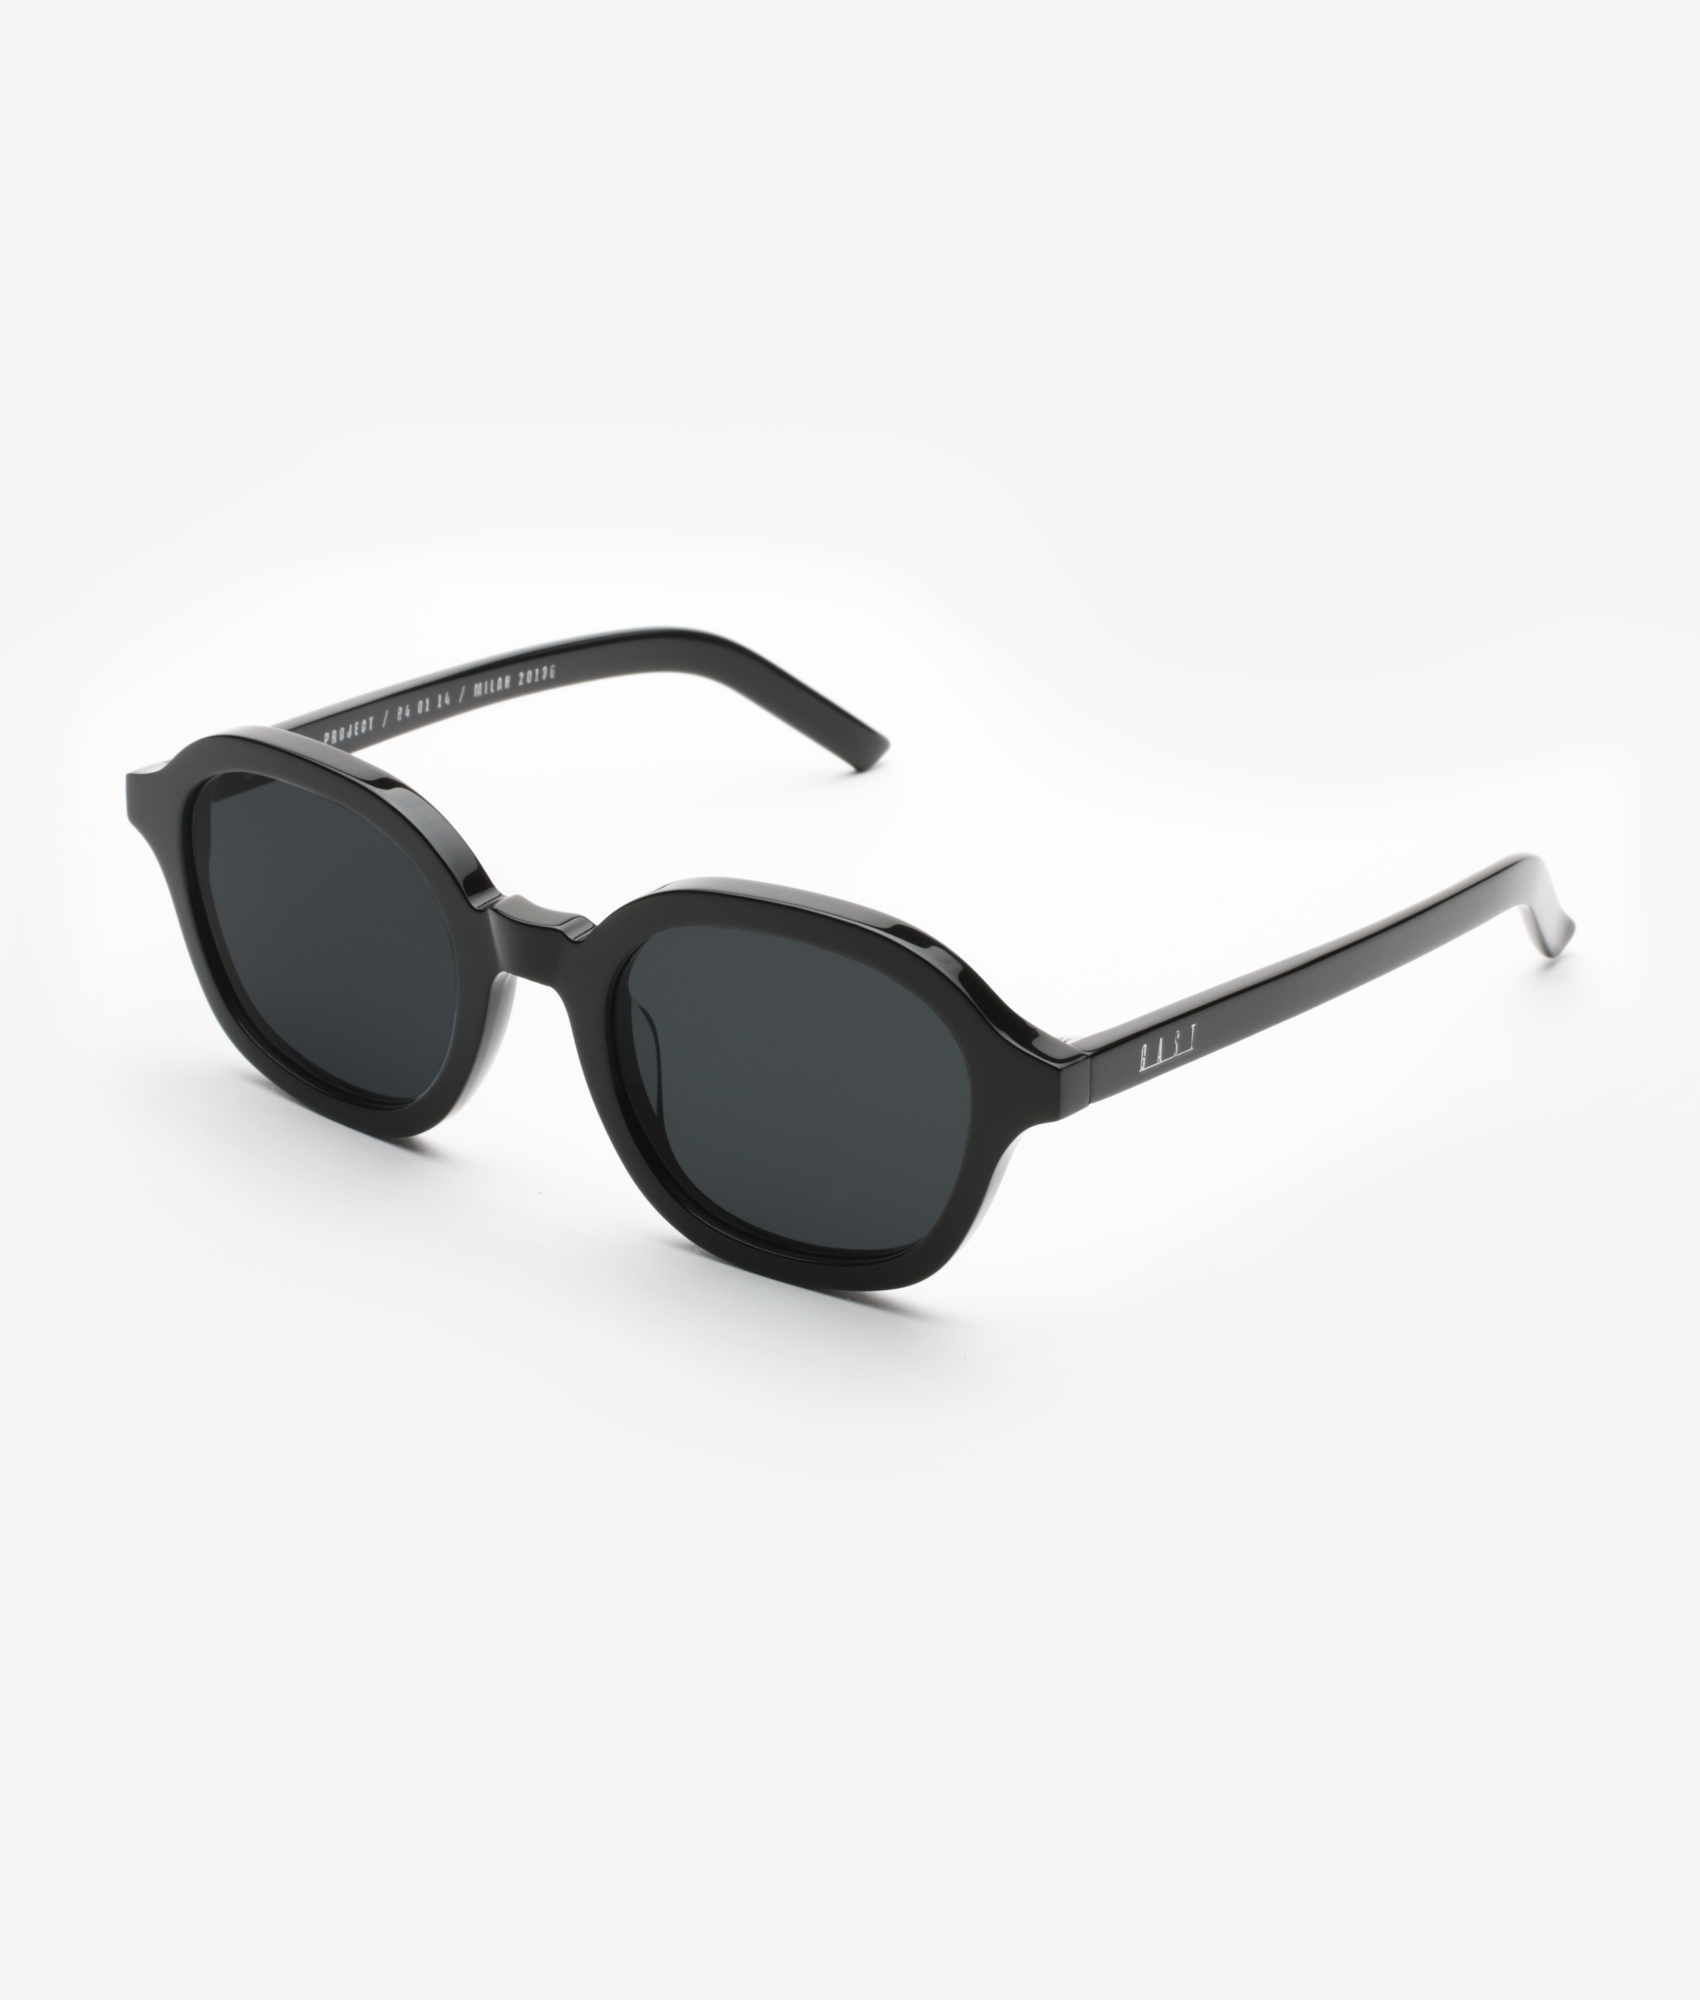 Mein black Gast Sunglasses